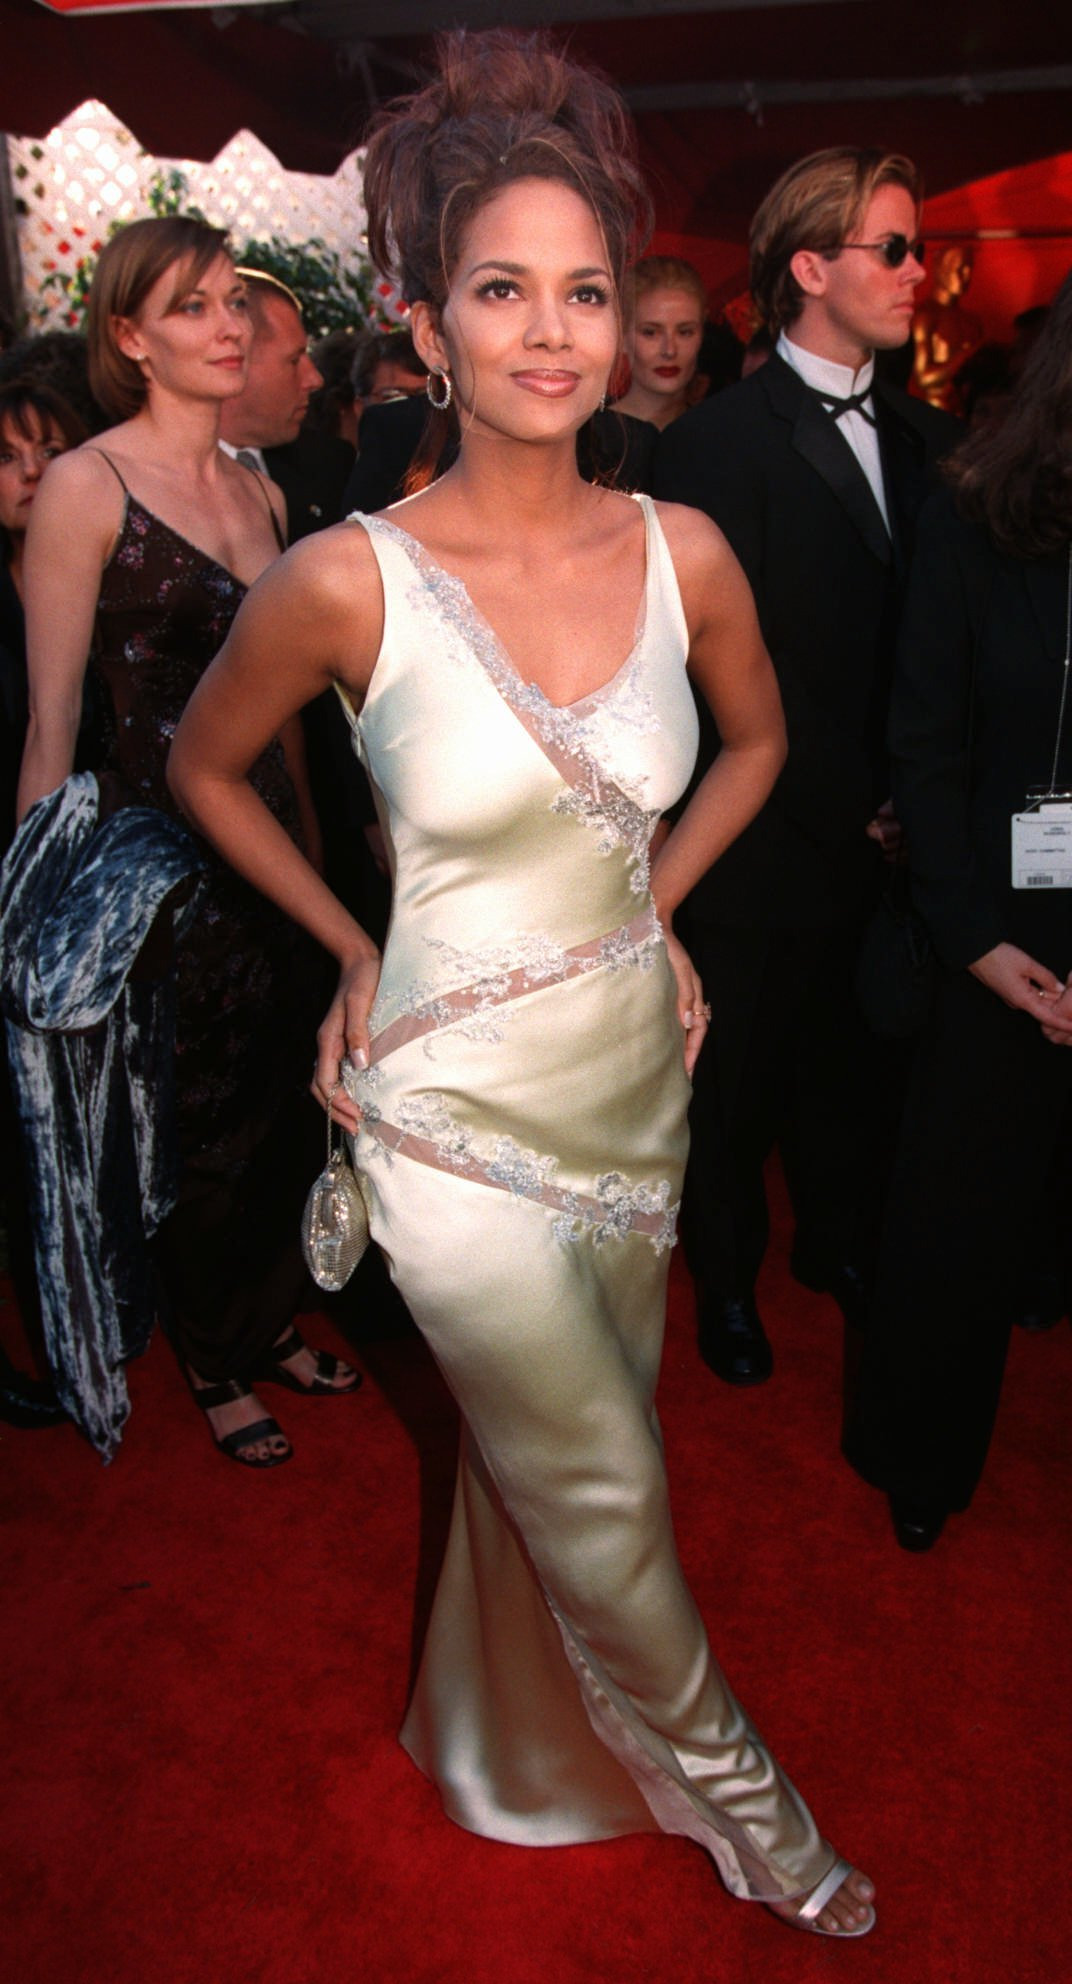 Actress Halle Berry arrives at the 70th Annual Academy Awards in Los Angeles on March 23, 1998.